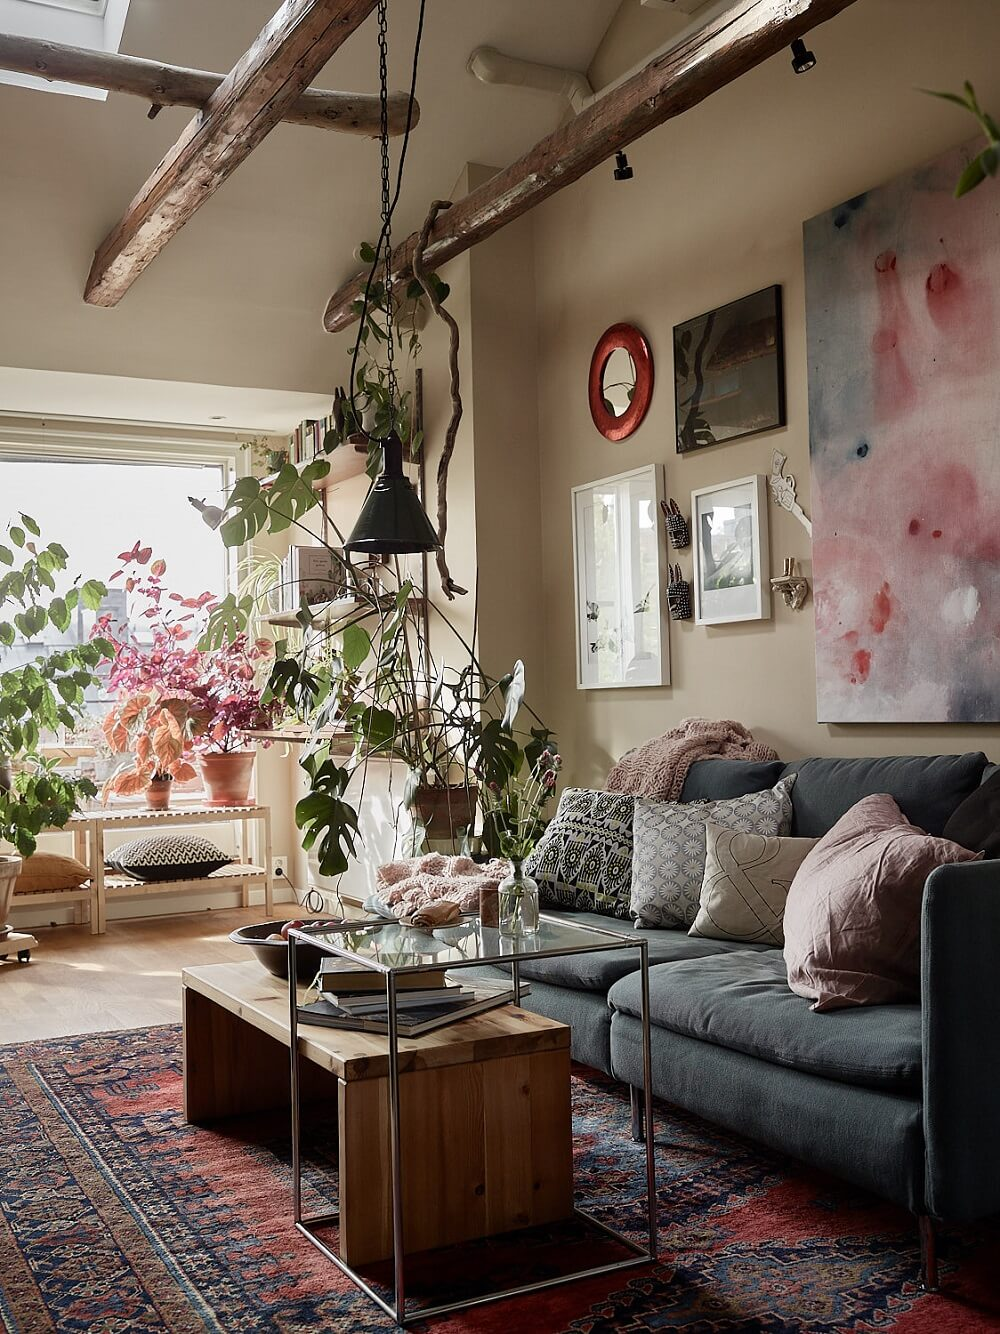 A Cozy Plant-Filled Attic Apartment in Stockholm